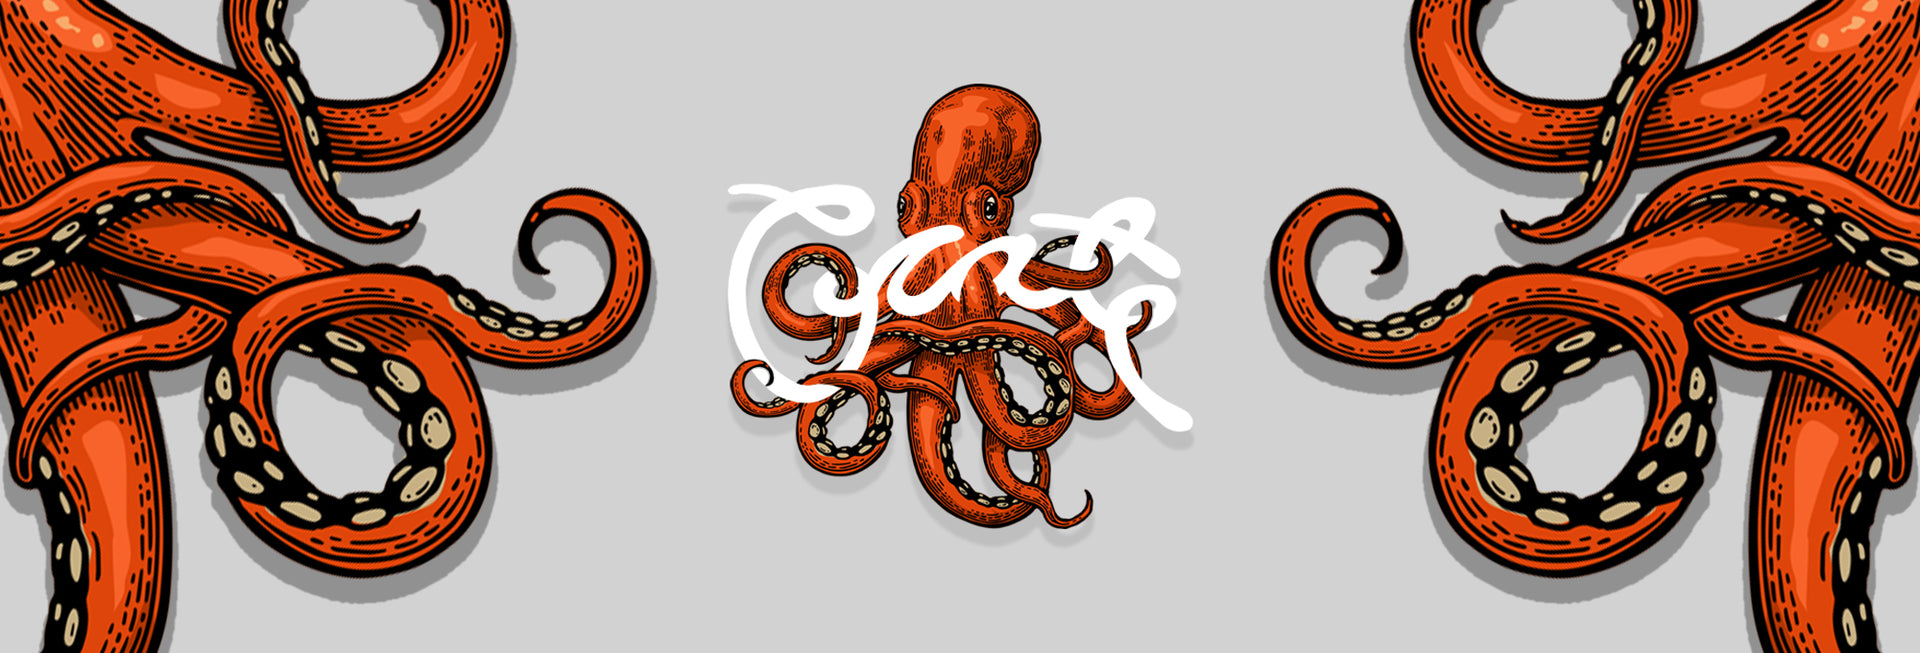 OCTOPUS LIMITED RELEASE.